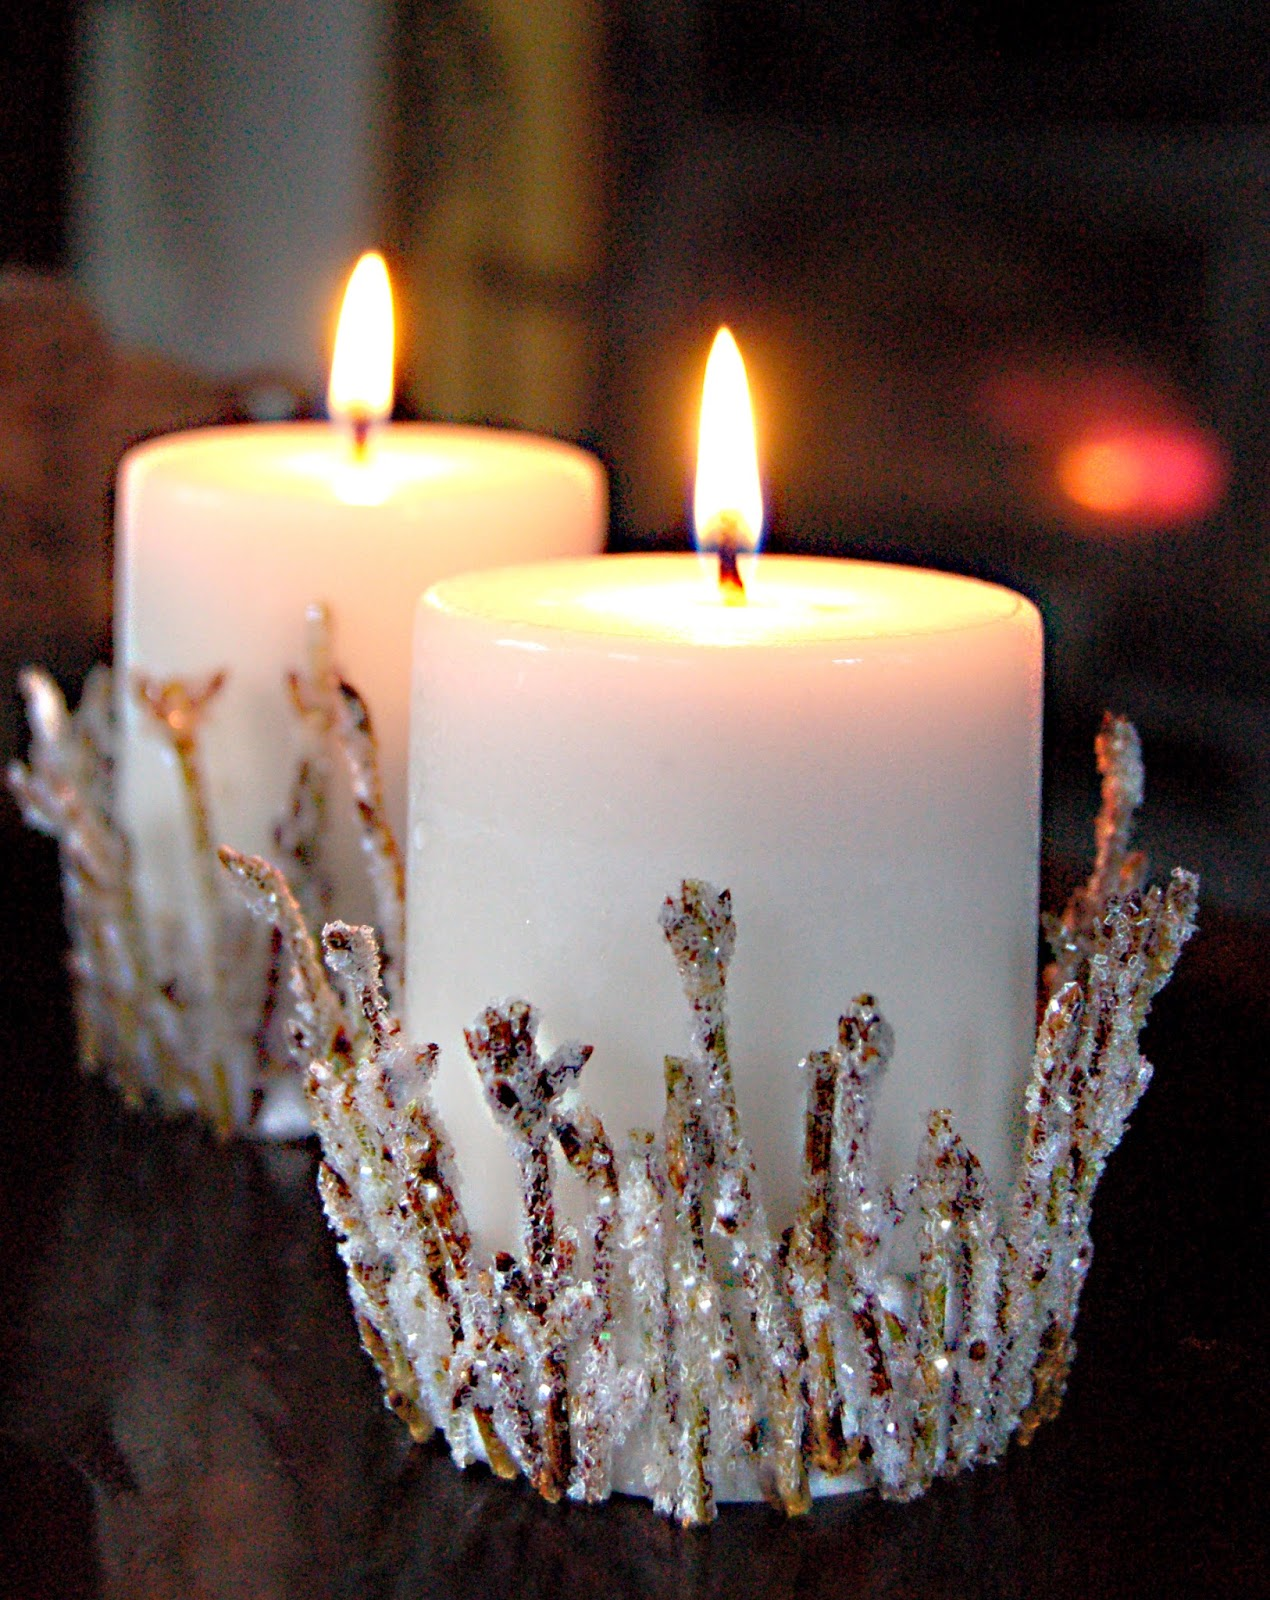 Facci designs diy twinkling twig candle holder for Candle design for debut